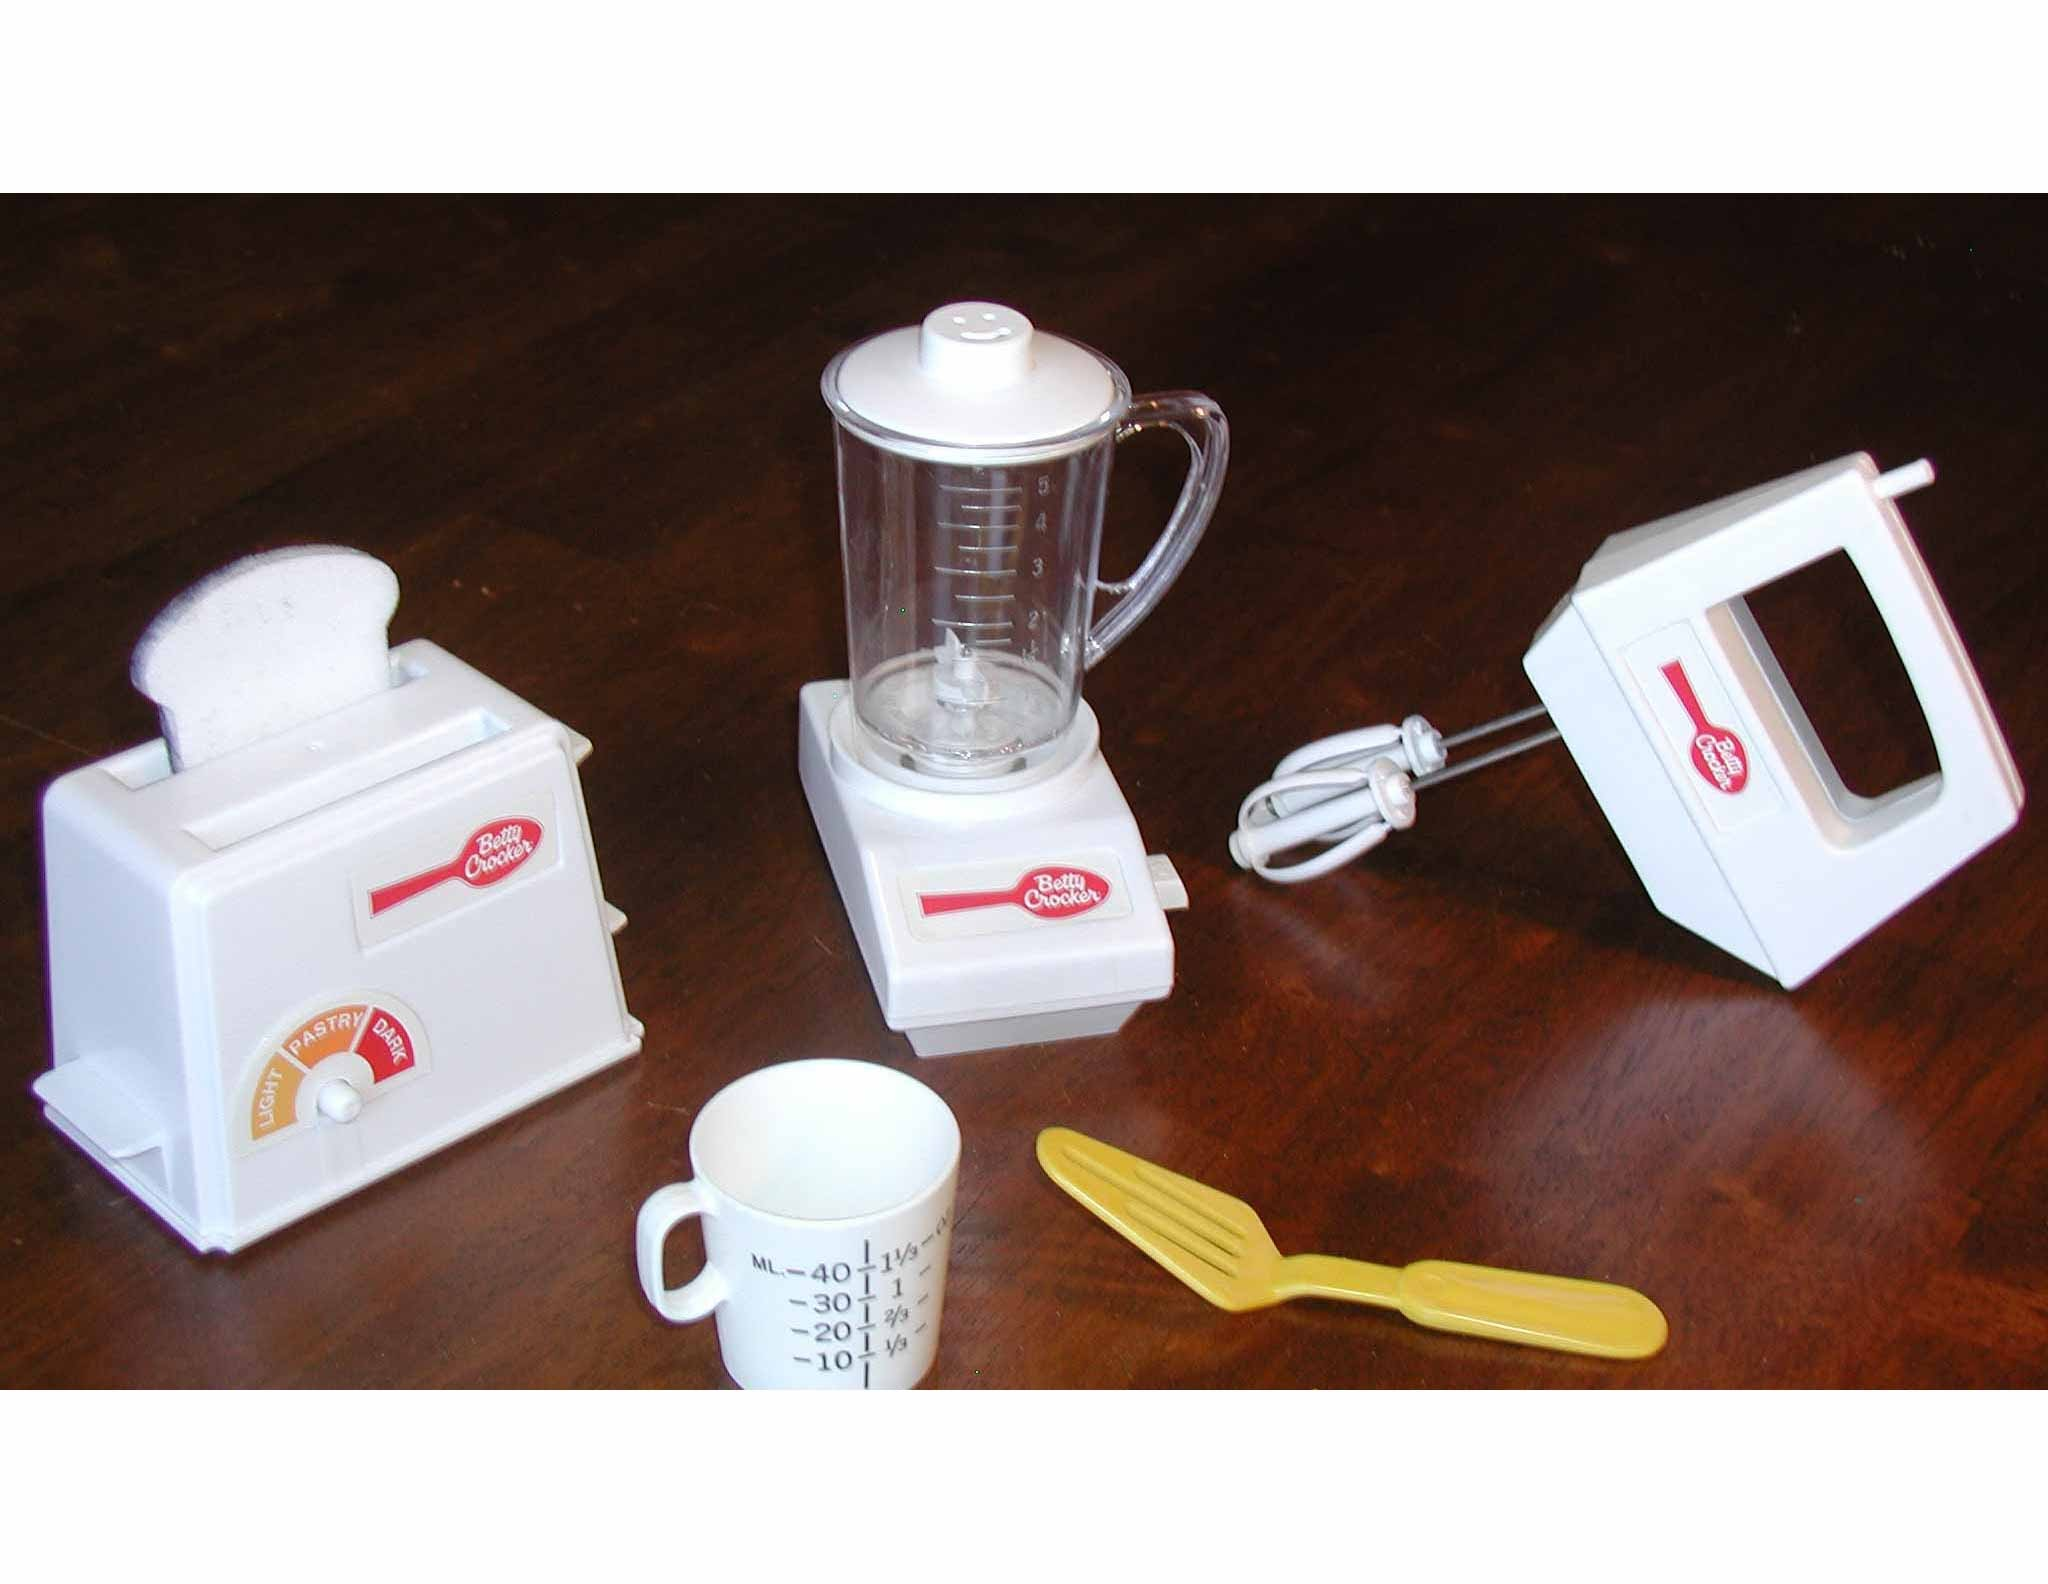 Uncategorized Toy Kitchen Appliances toy kitchen appliances ideas photo 5